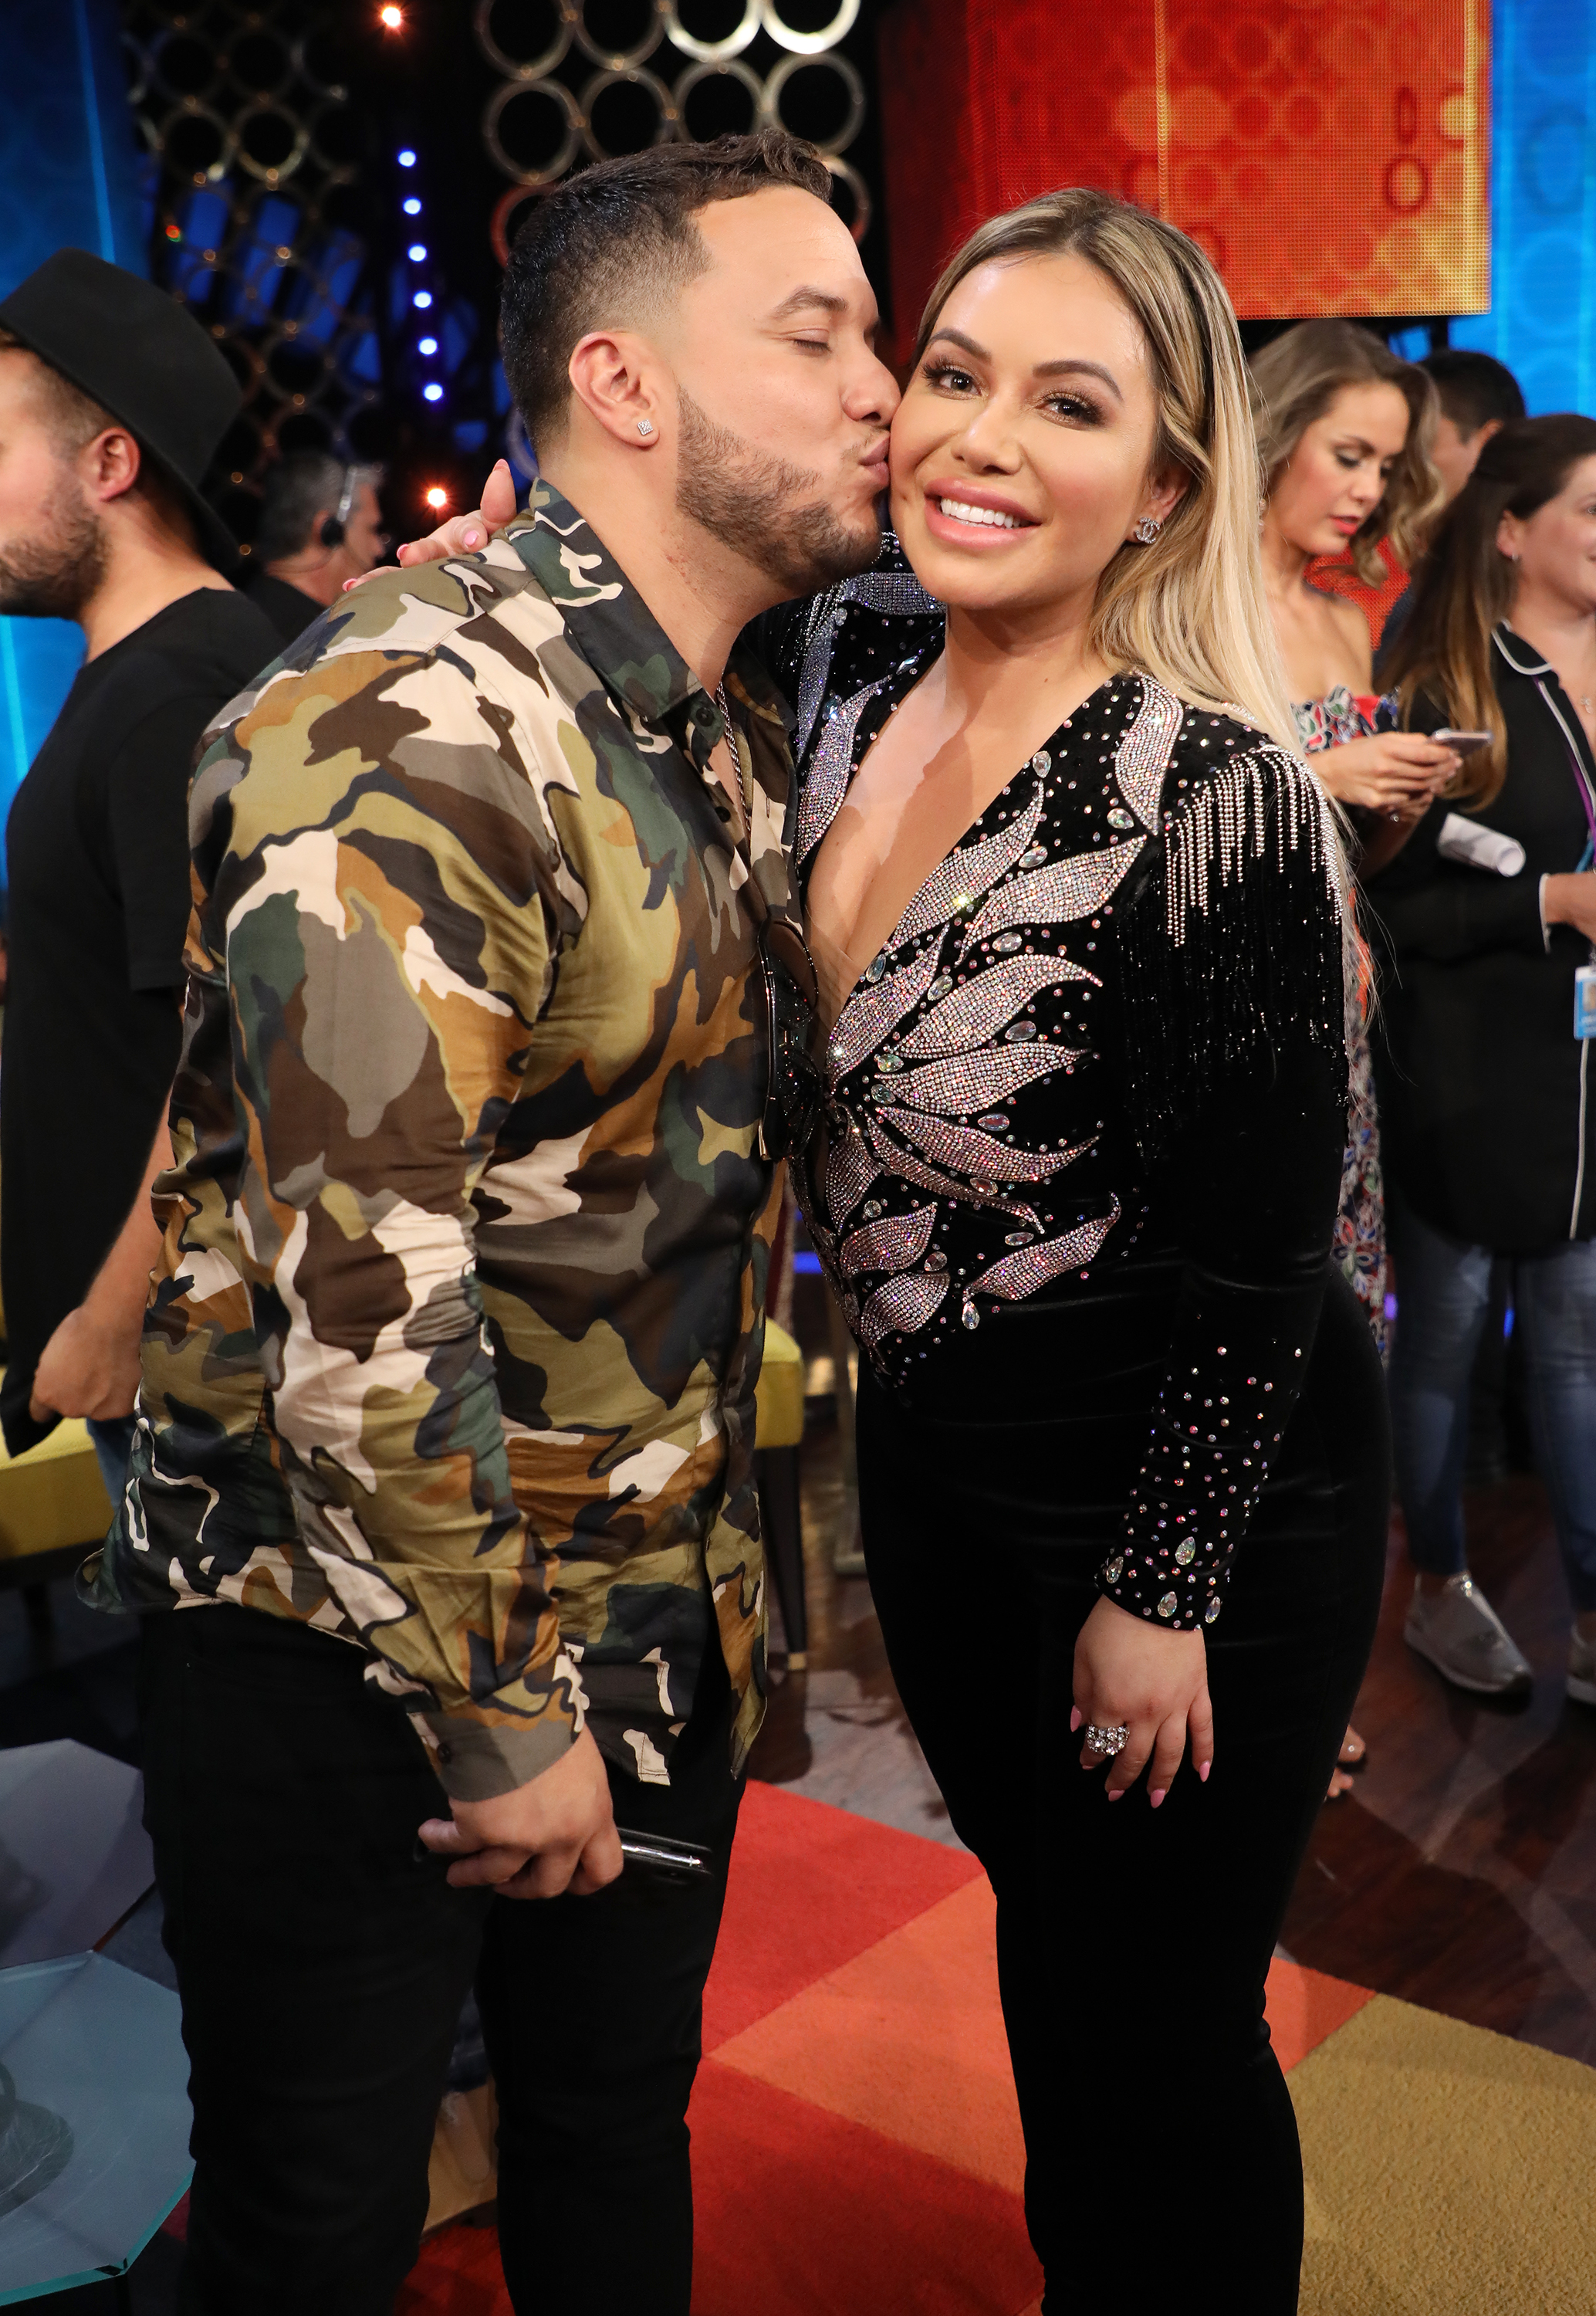 Lorenzo Mendez and Chiquis Rivera